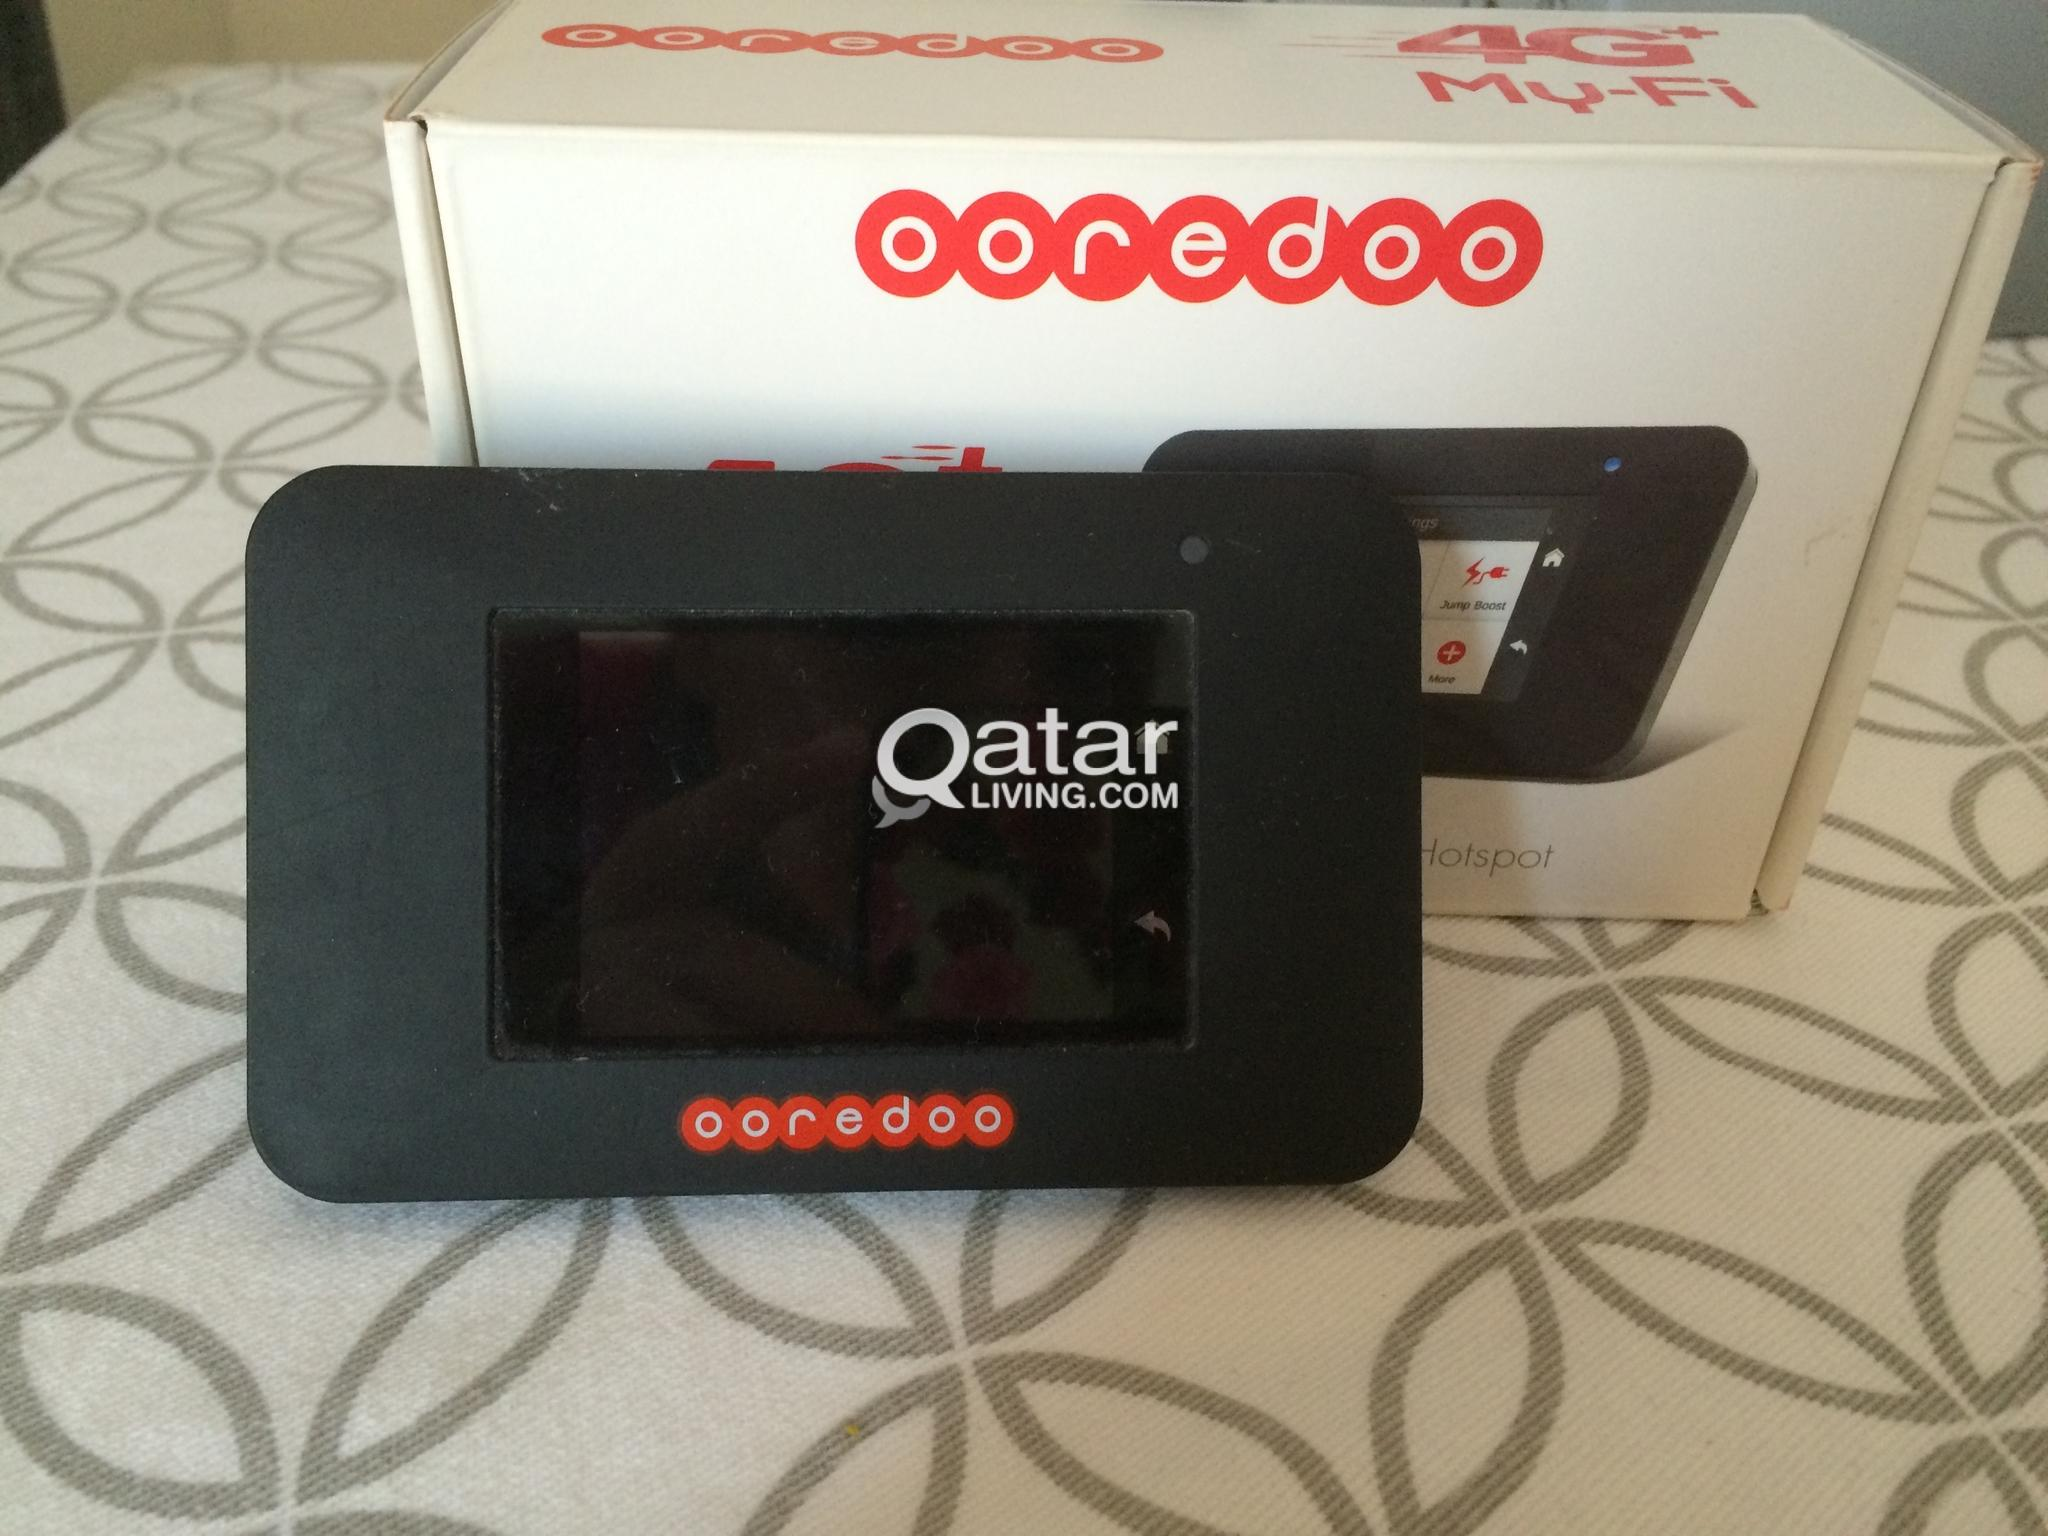 Portable Ooredoo 4G plus My-FI router | Qatar Living